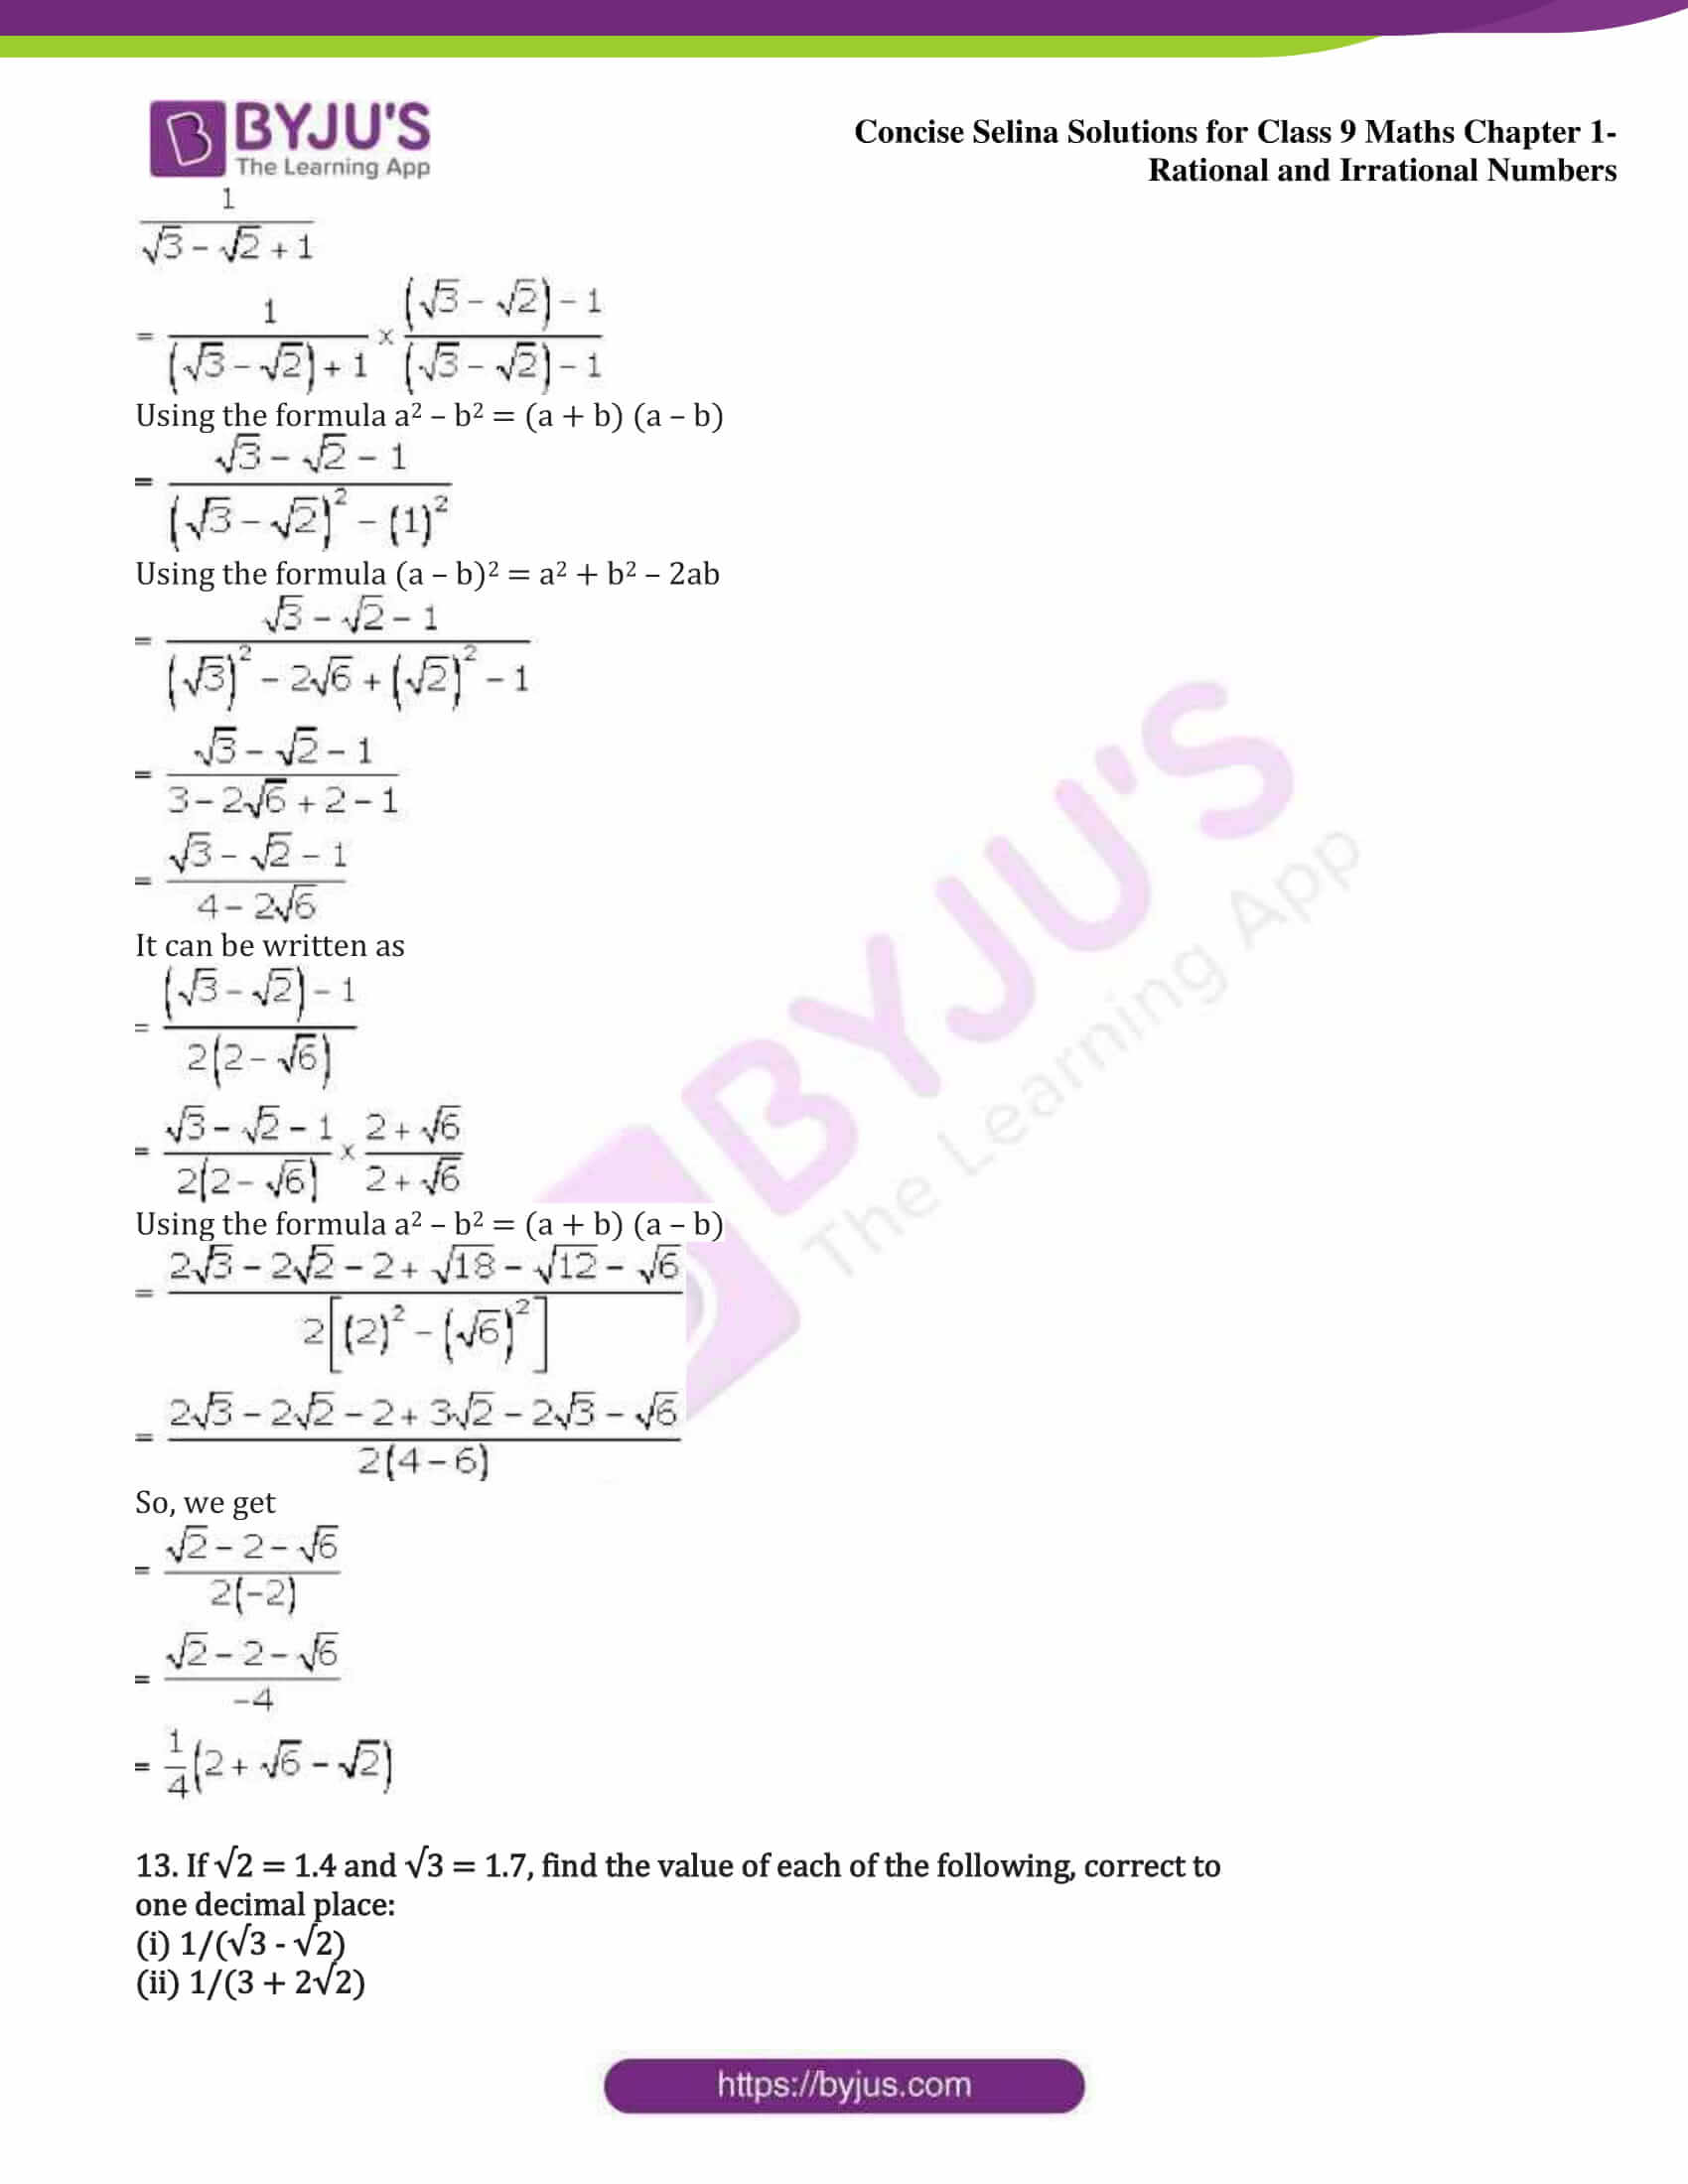 icse class 9 maths may13 selina solutions chapter 1 rational and irrational numbers 29